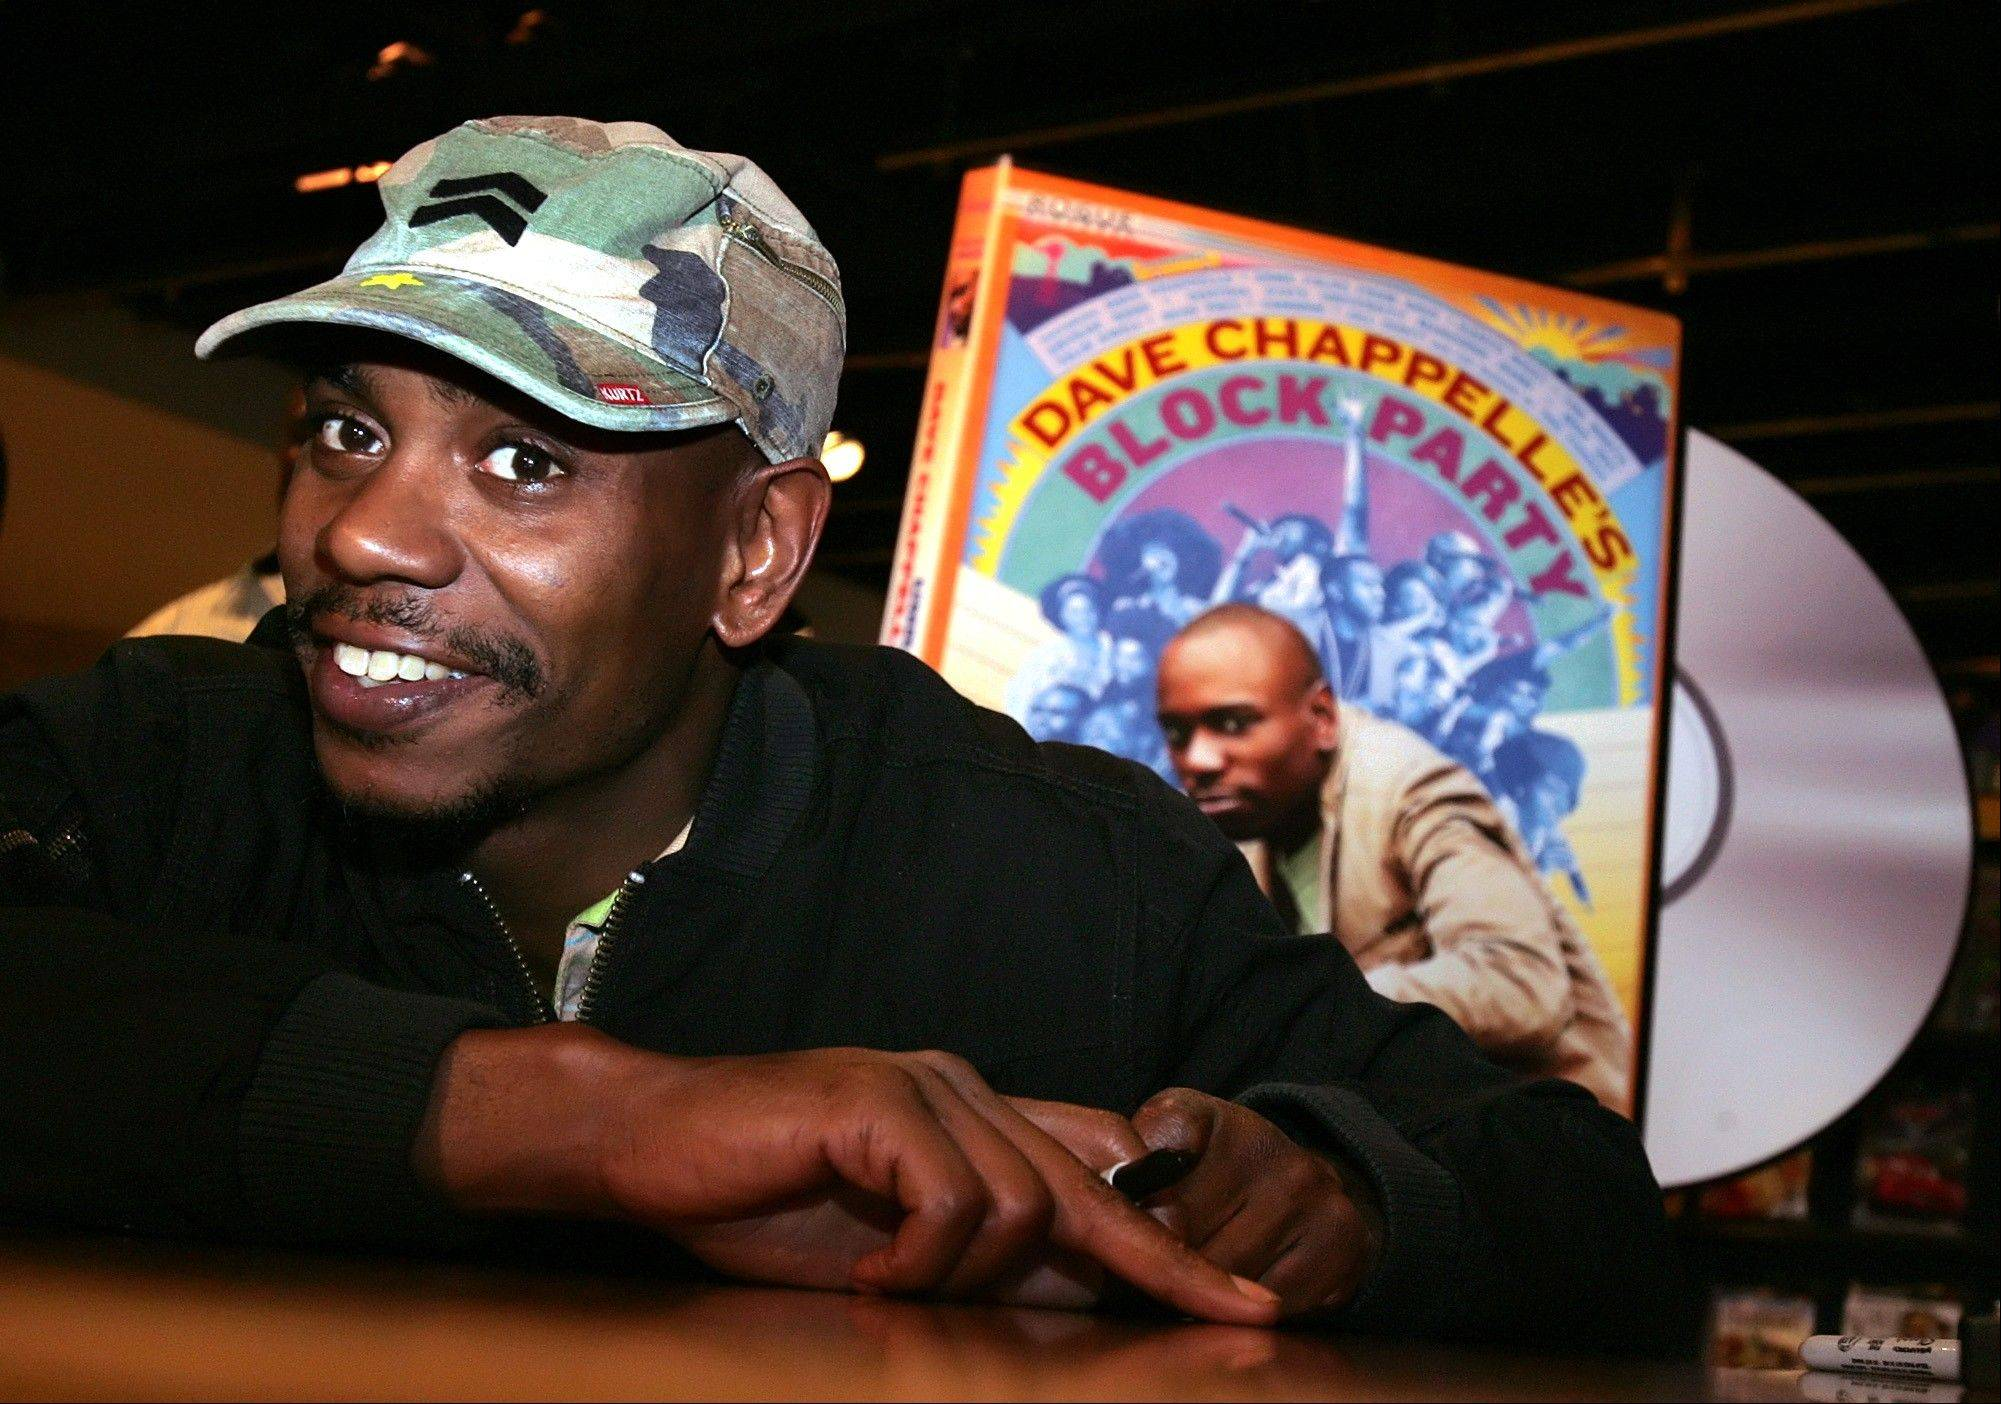 Comedian Dave Chappelle will make his most substantial return to stand-up comedy in a monthlong tour for Funny Or Die. He's coming to the First Midwest Bank Amphitheatre in Tinley Park on Saturday, Aug. 31.